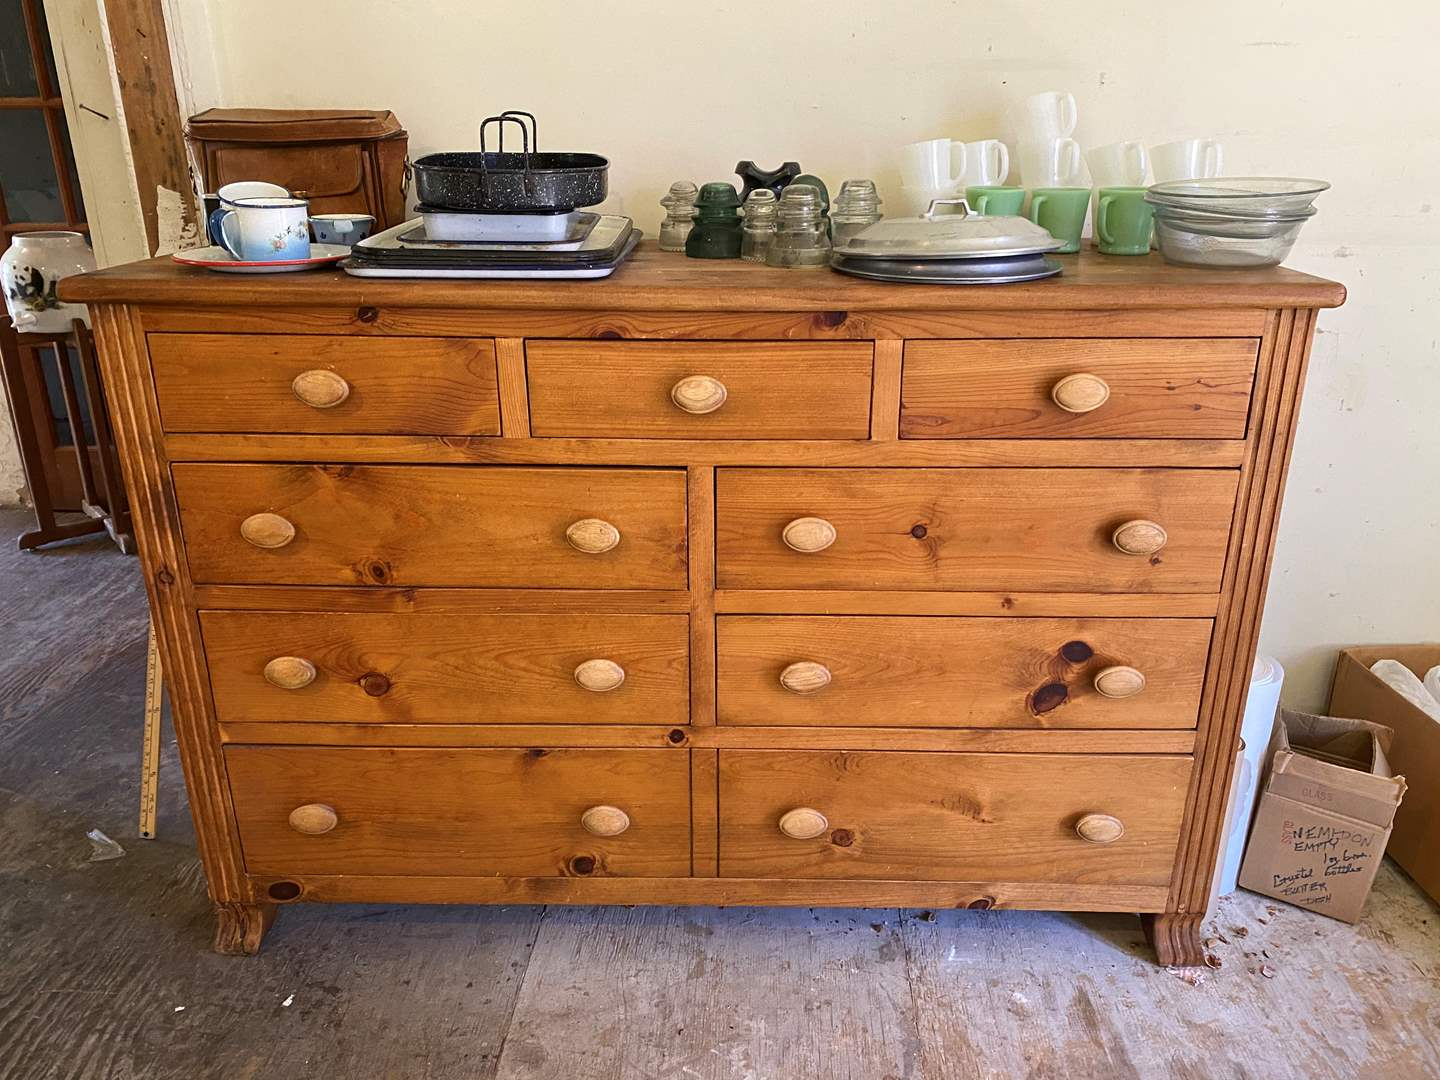 Lot # 56 - Solid Wood Dresser w/o Contents (main image)